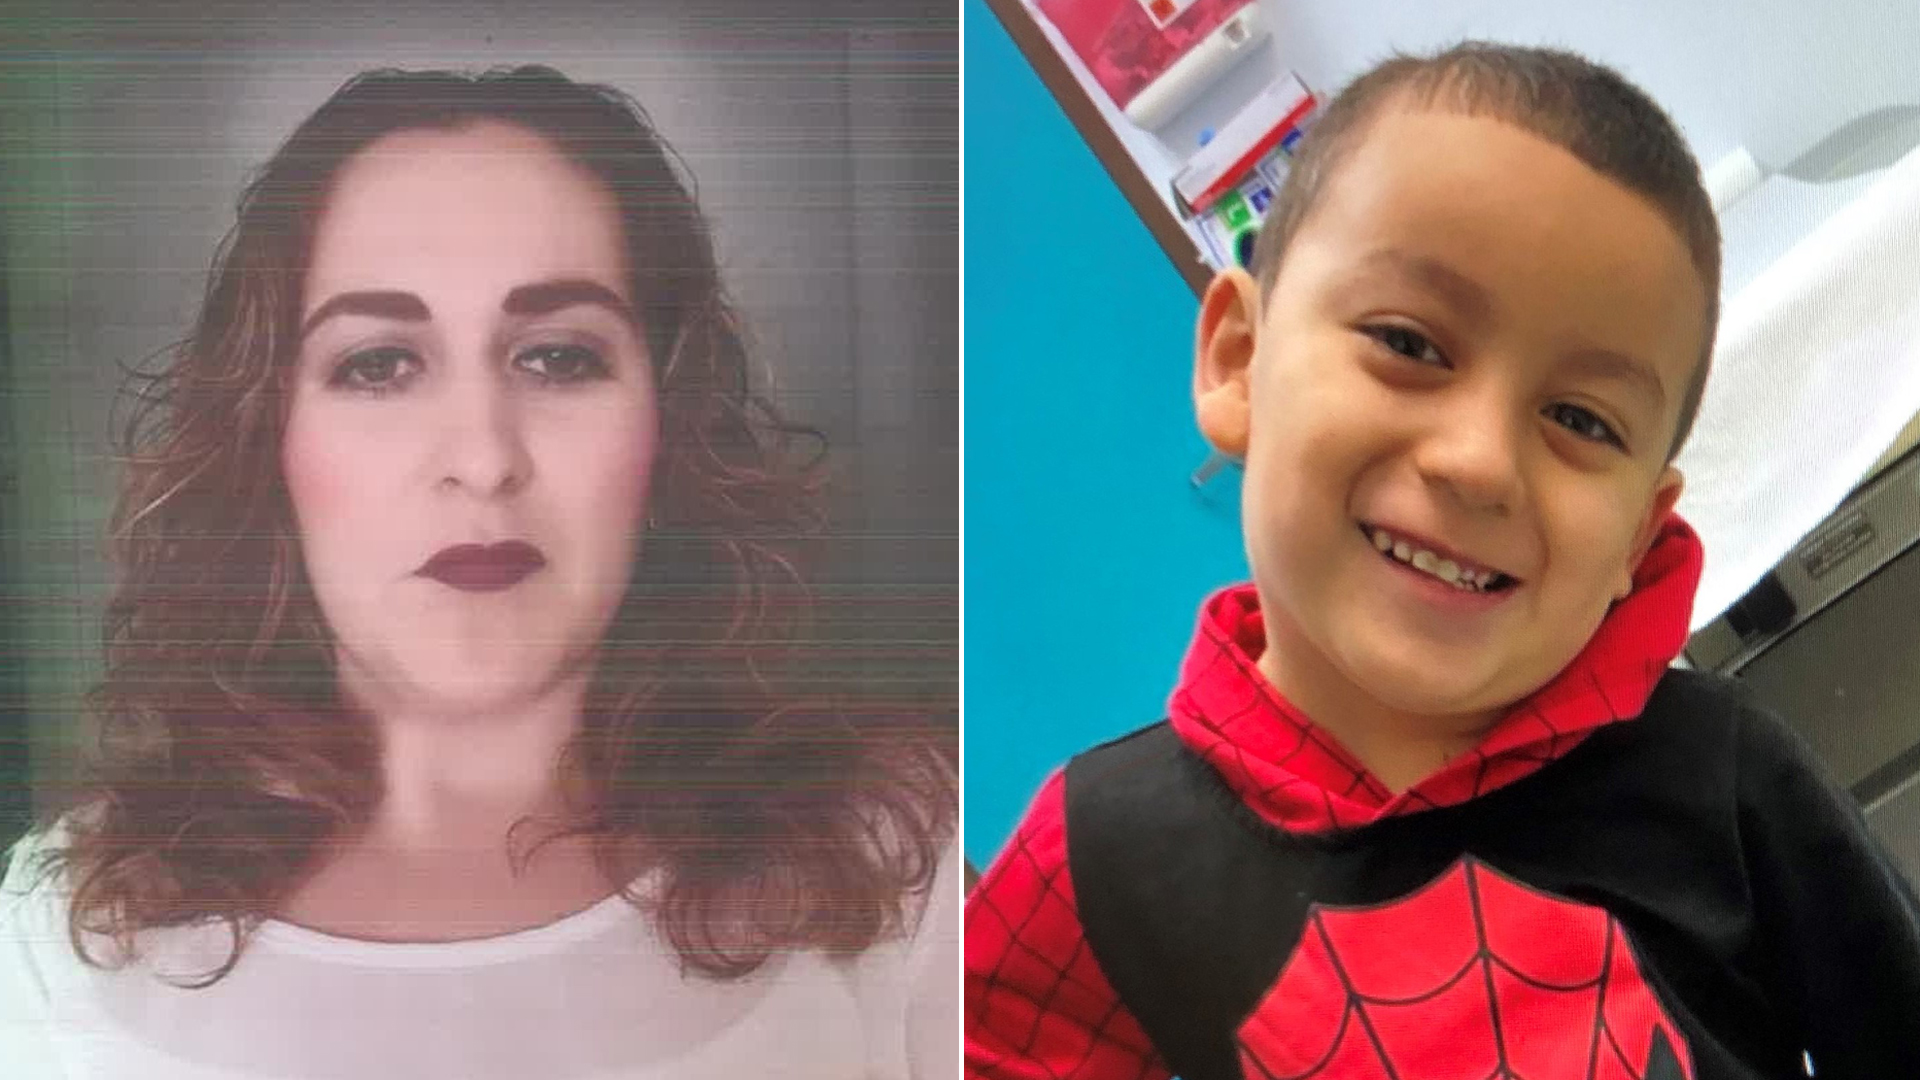 Christina and Reynaldo Gonzalez are shown in undated photos released by the Los Angeles Police Department on March 6, 2020.